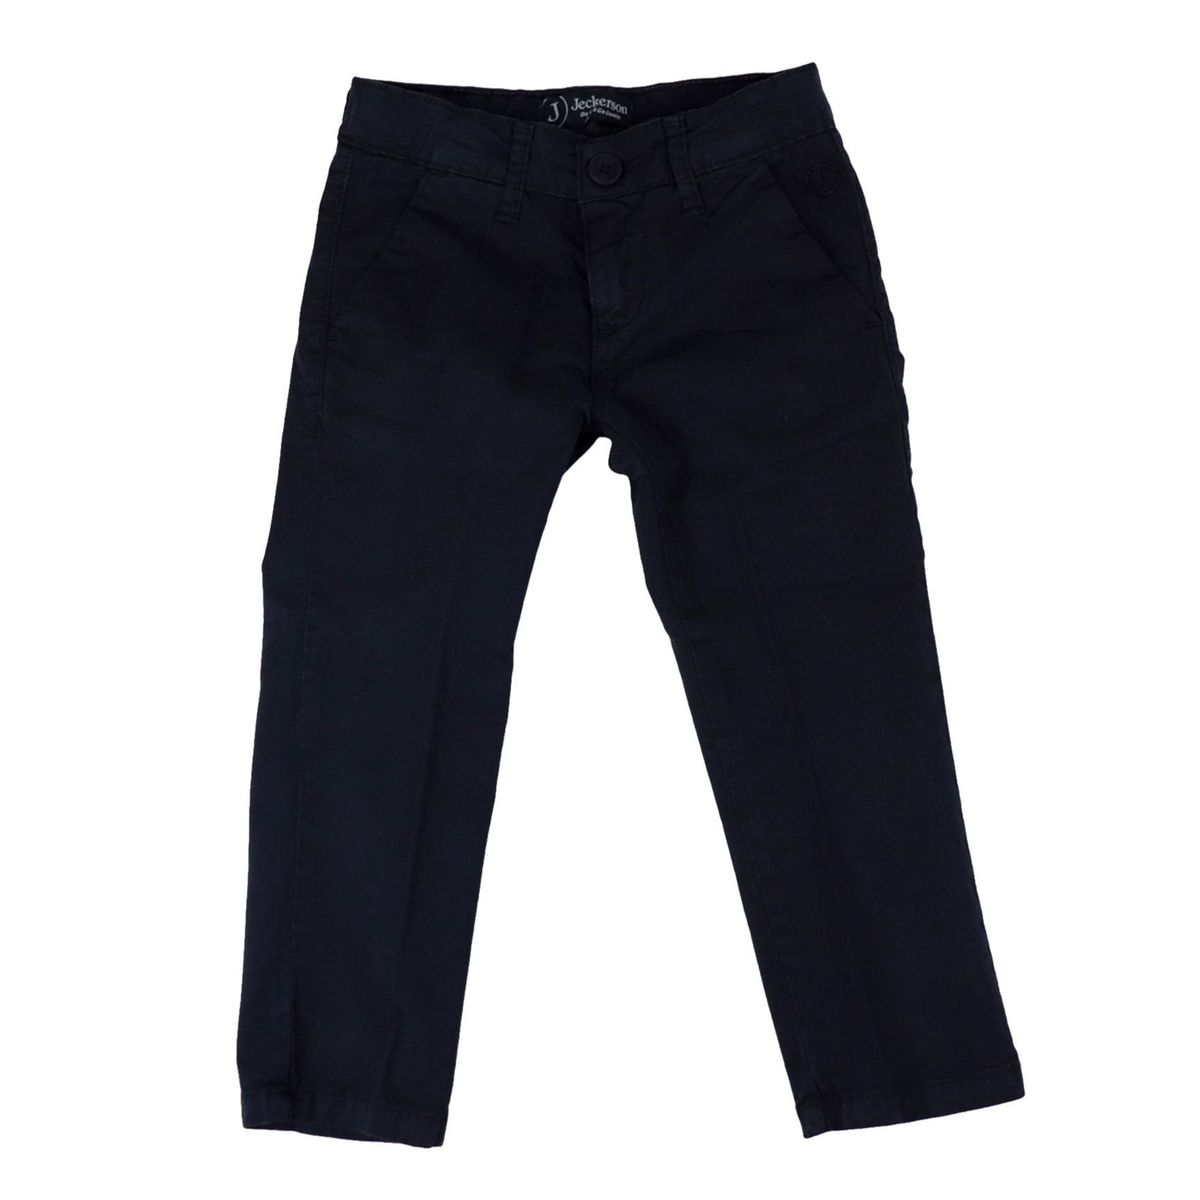 Cinos gabardine trousers with america pocket Blue Jeckerson